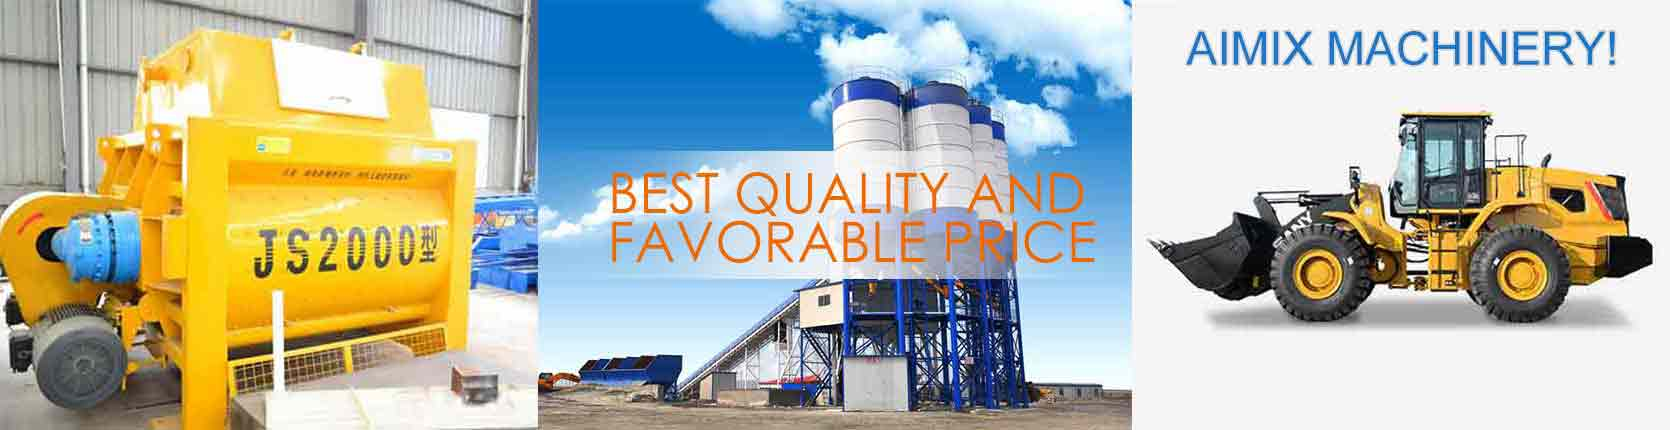 Ready Mixed Concrete Production Equipment for Sale in AIMIX